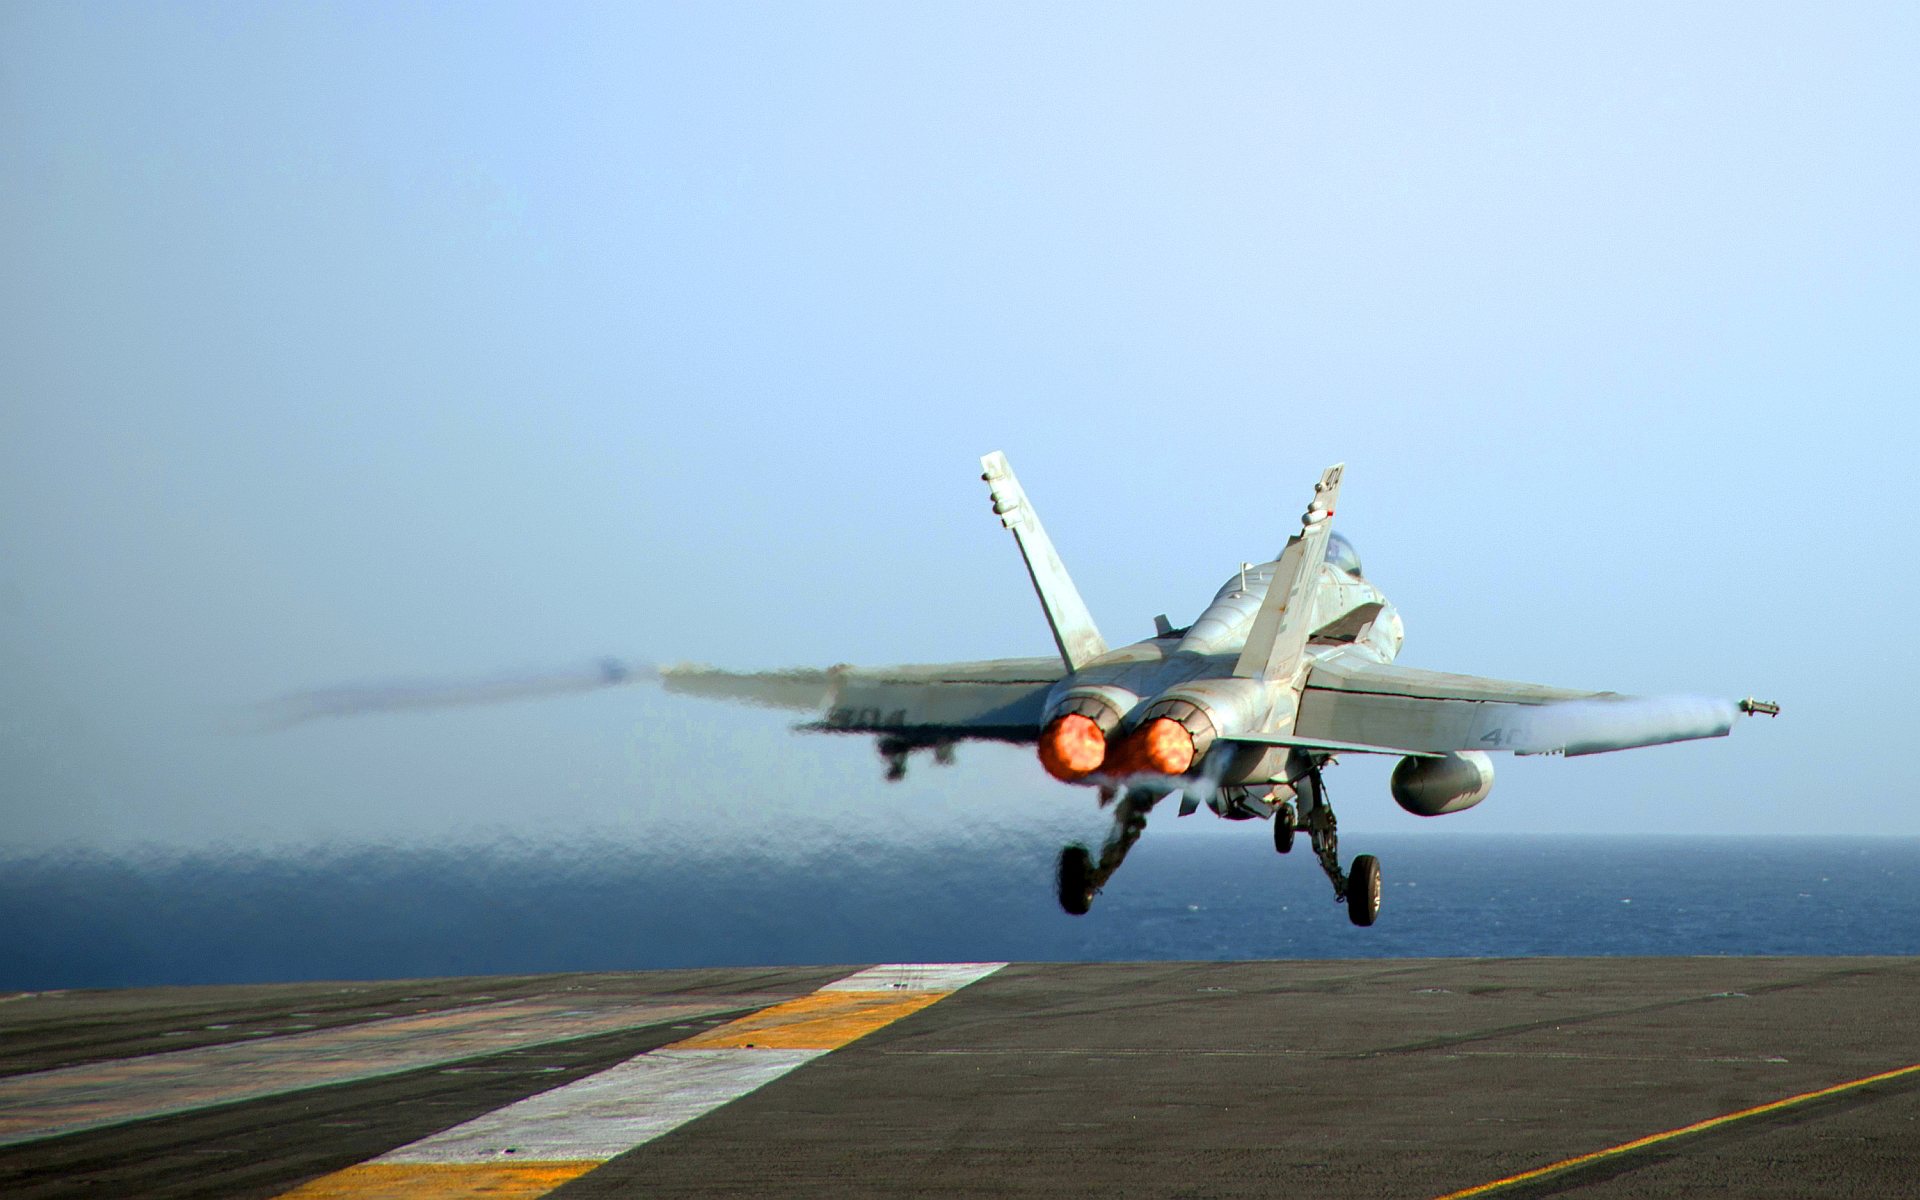 Jet aircraft carrier takeoff